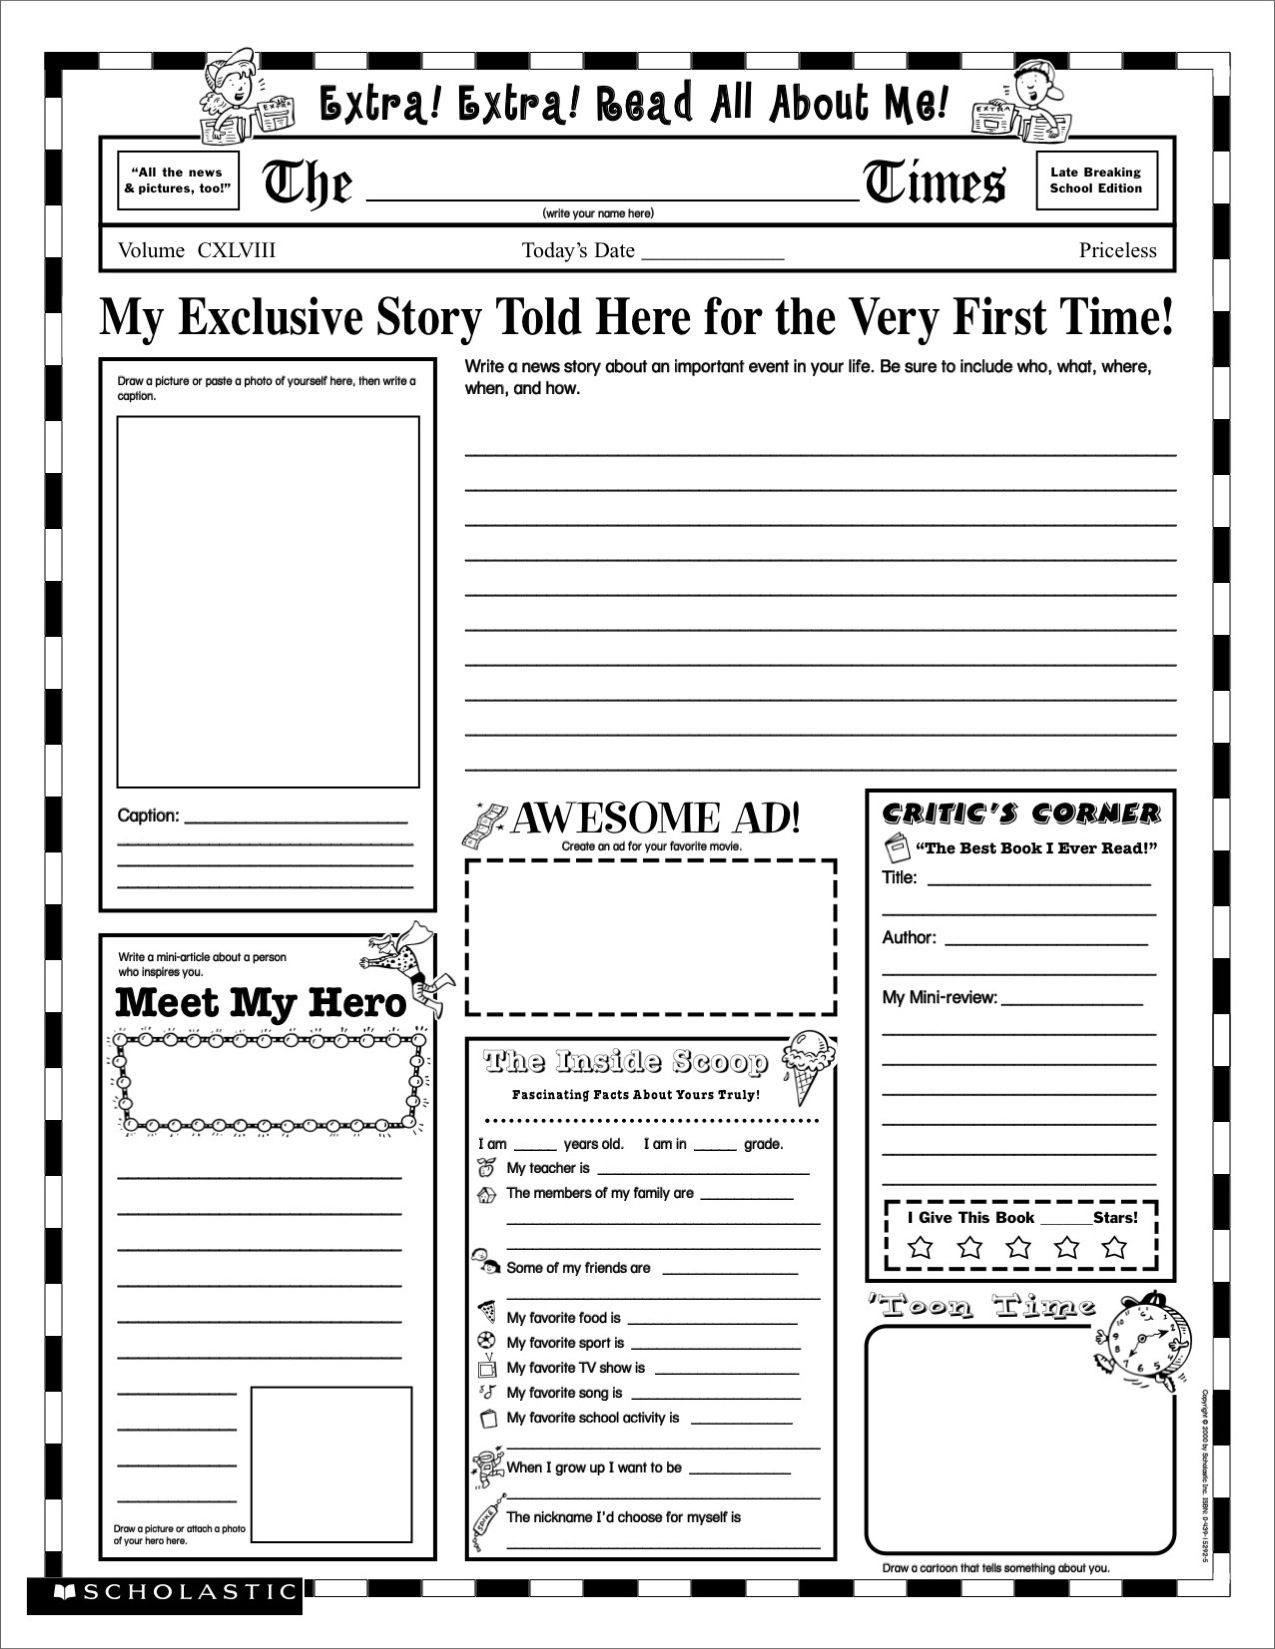 hight resolution of template for research report 4th grade - Google Search   Learning poster